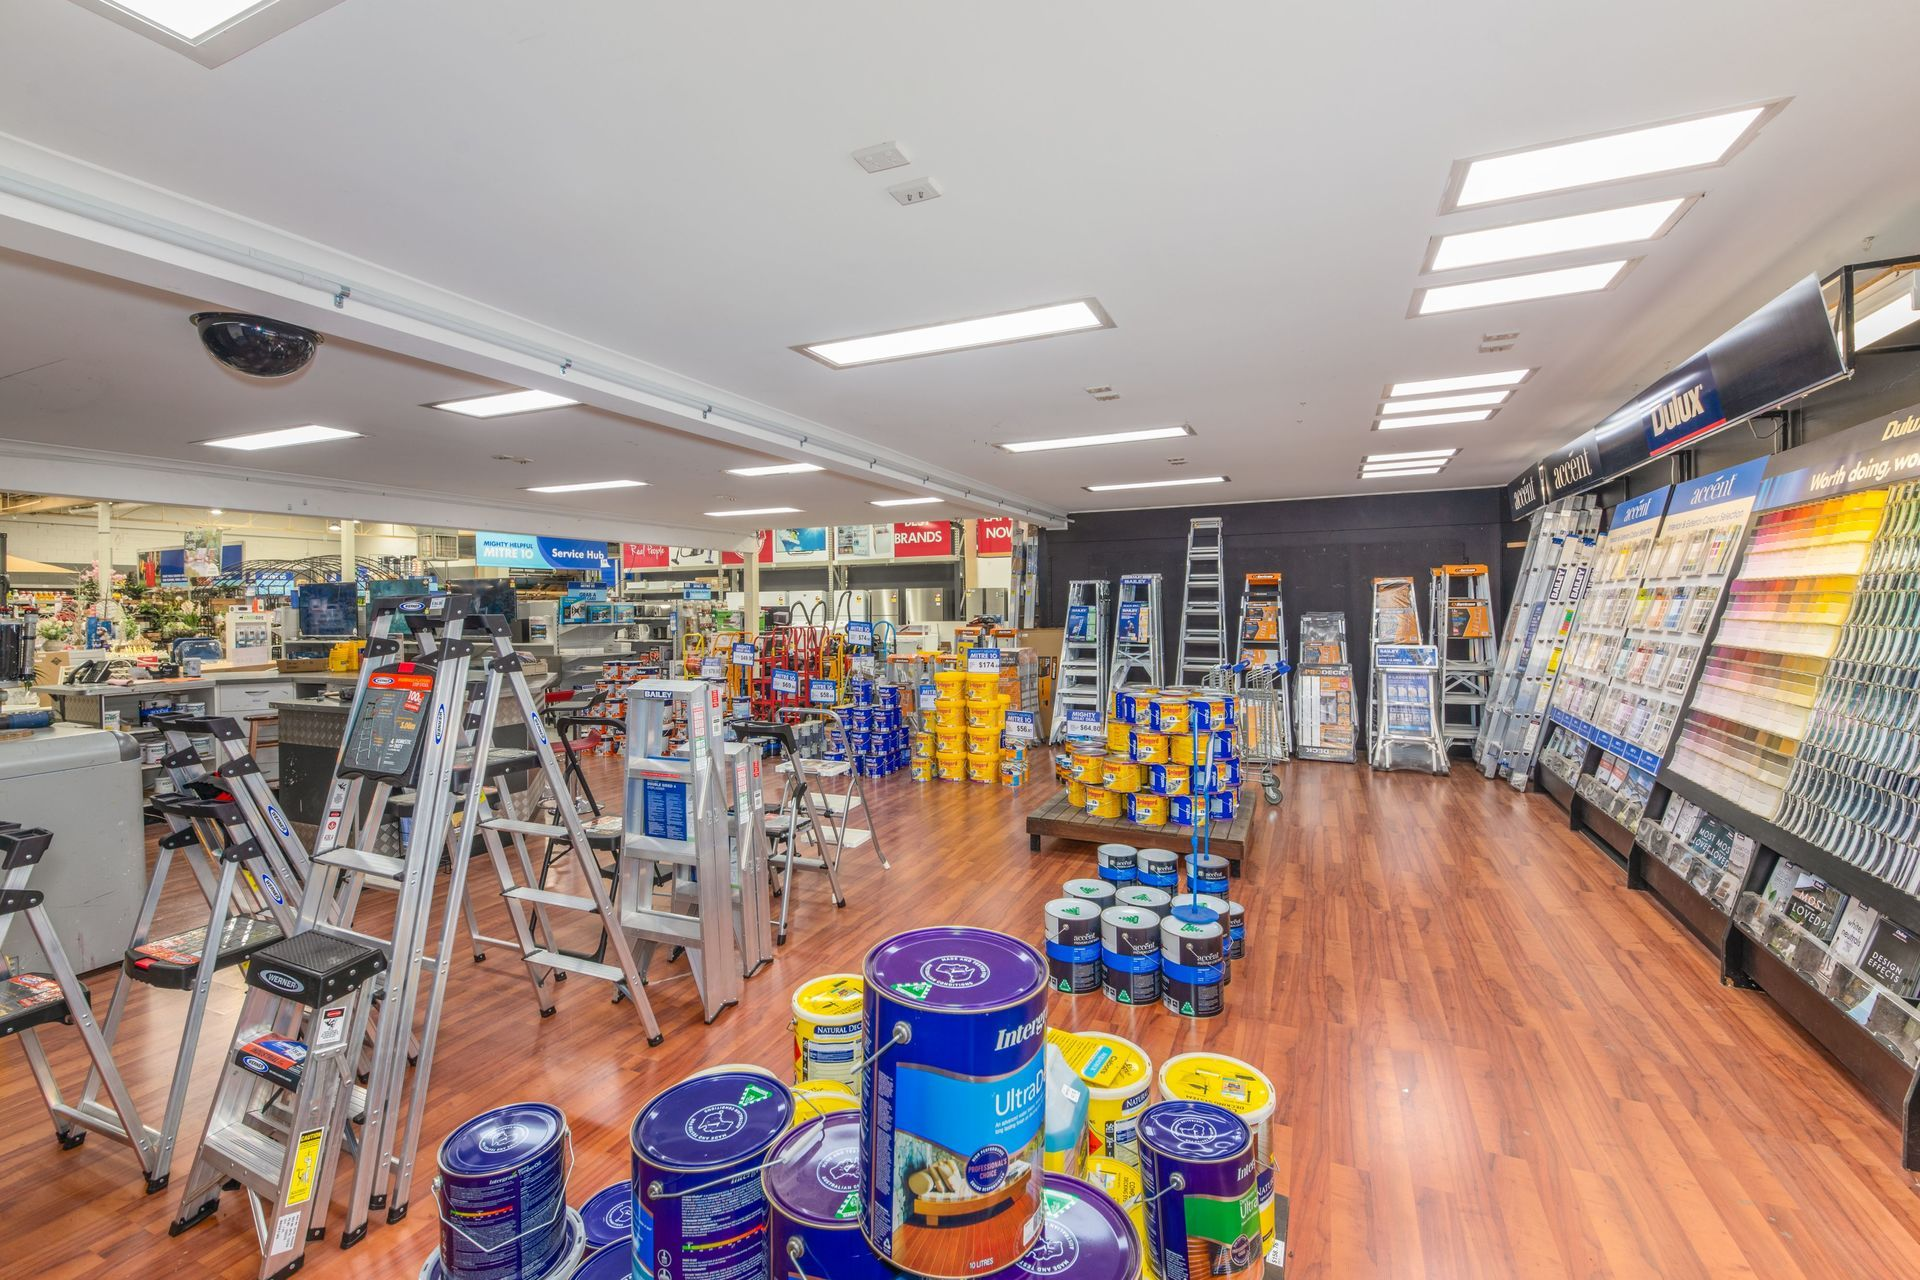 PROMINENT FREESTANDING HARDWARE STORE WITHIN VIBRANT REGIONAL CENTRE